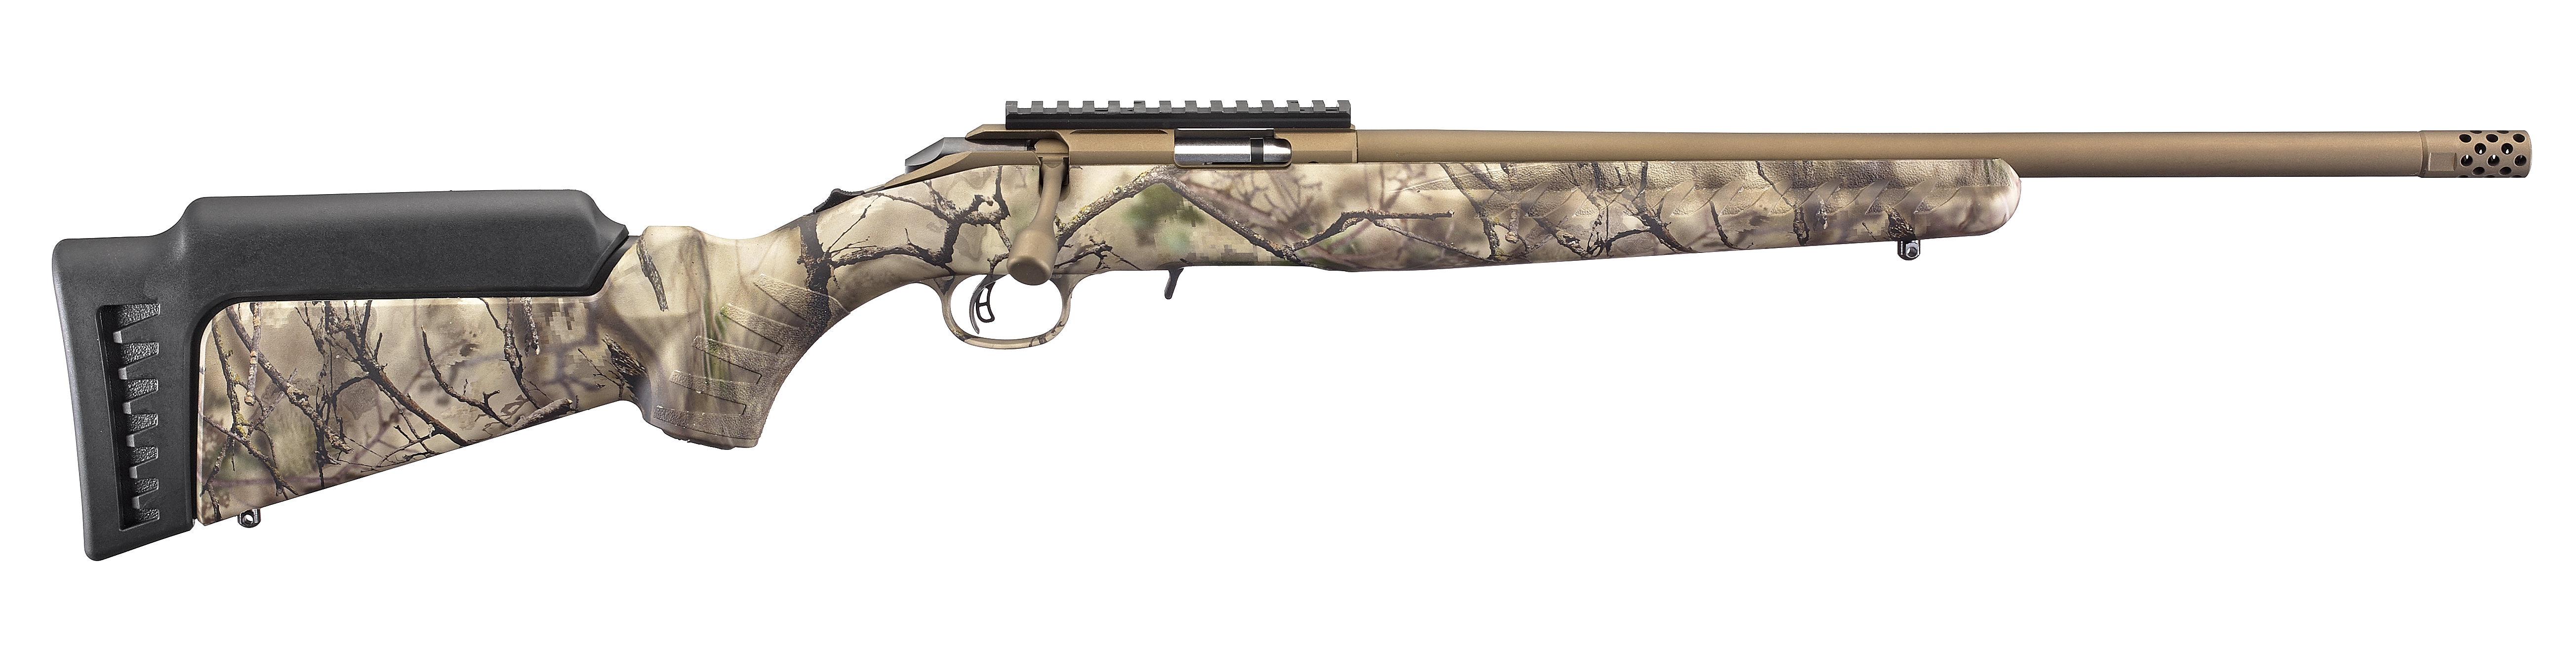 Ruger AMERICAN RIFLE 17 HMR